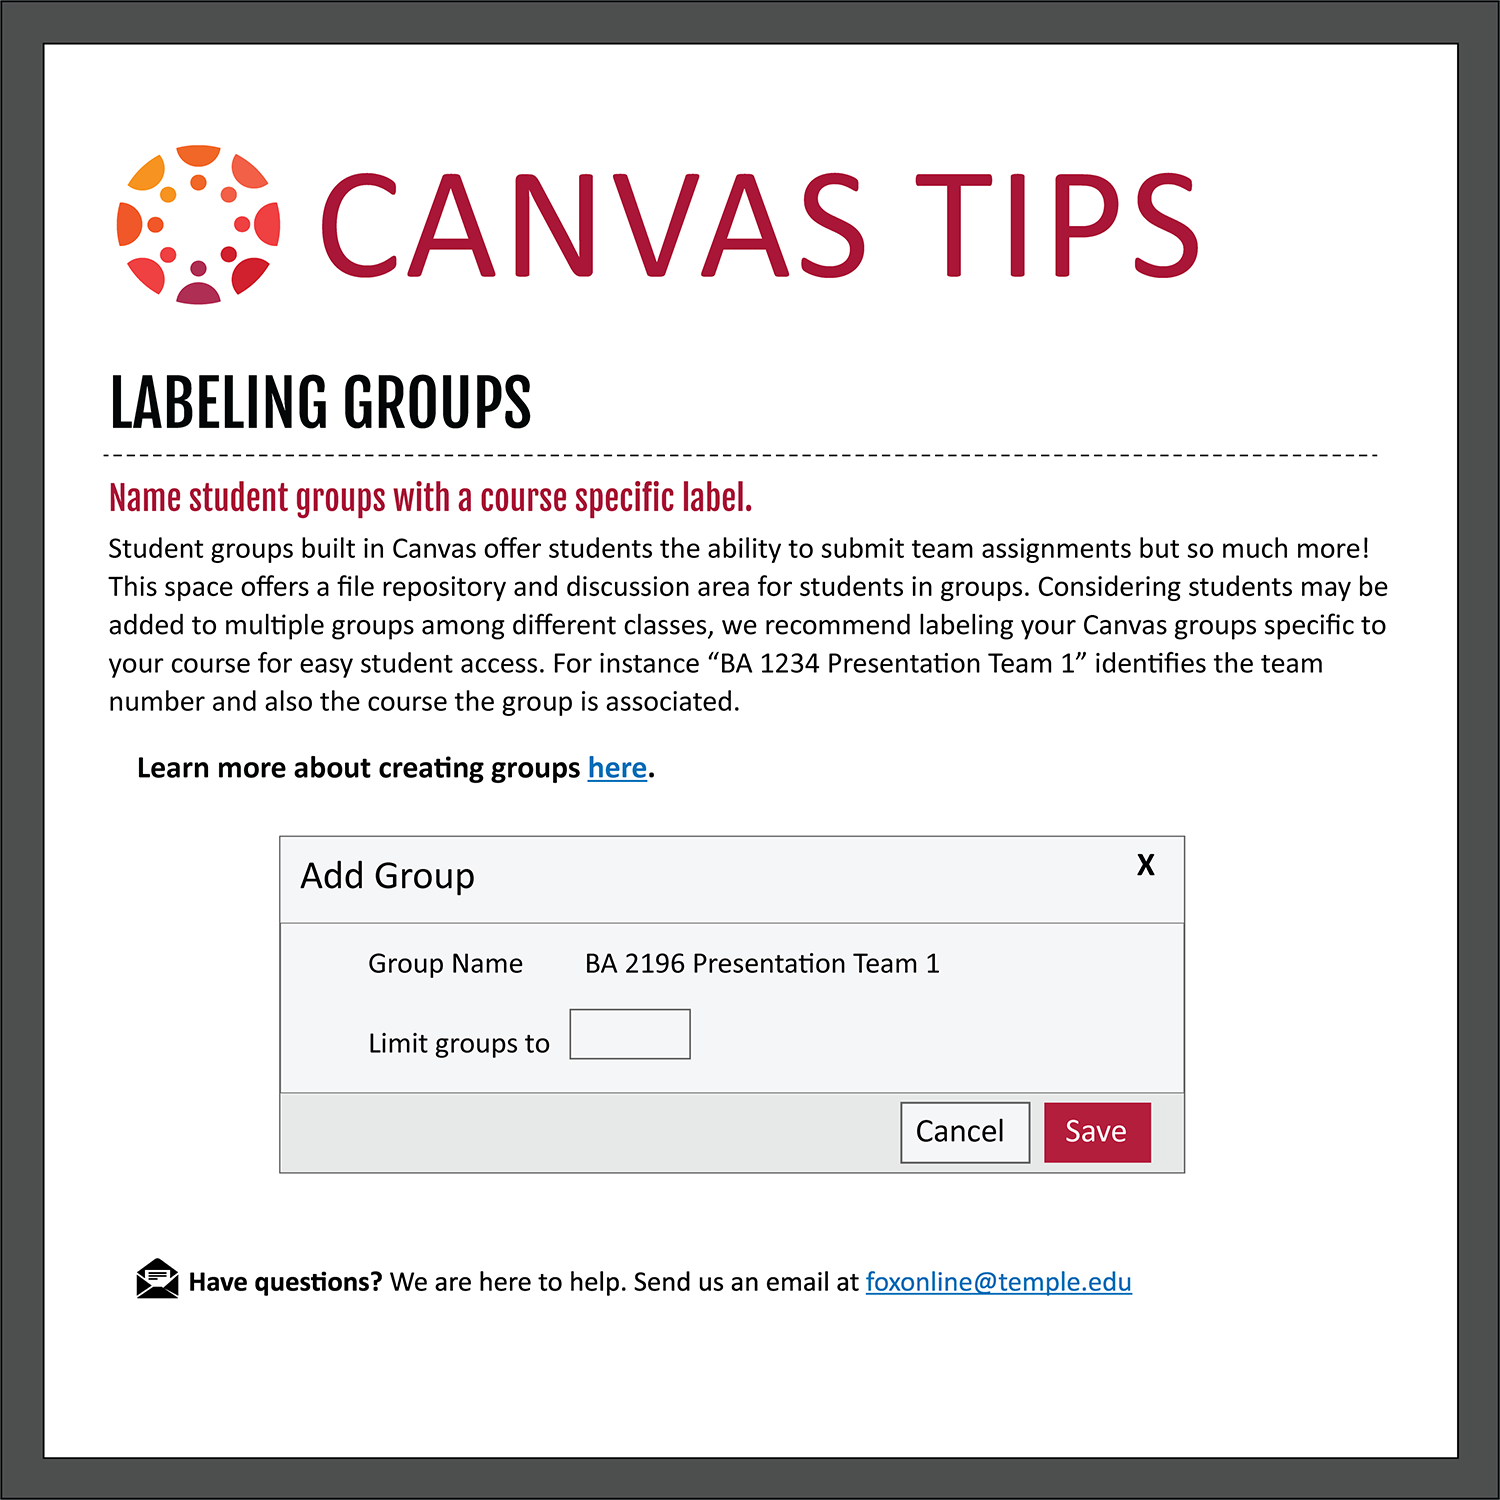 Tip 10: Labeling Groups